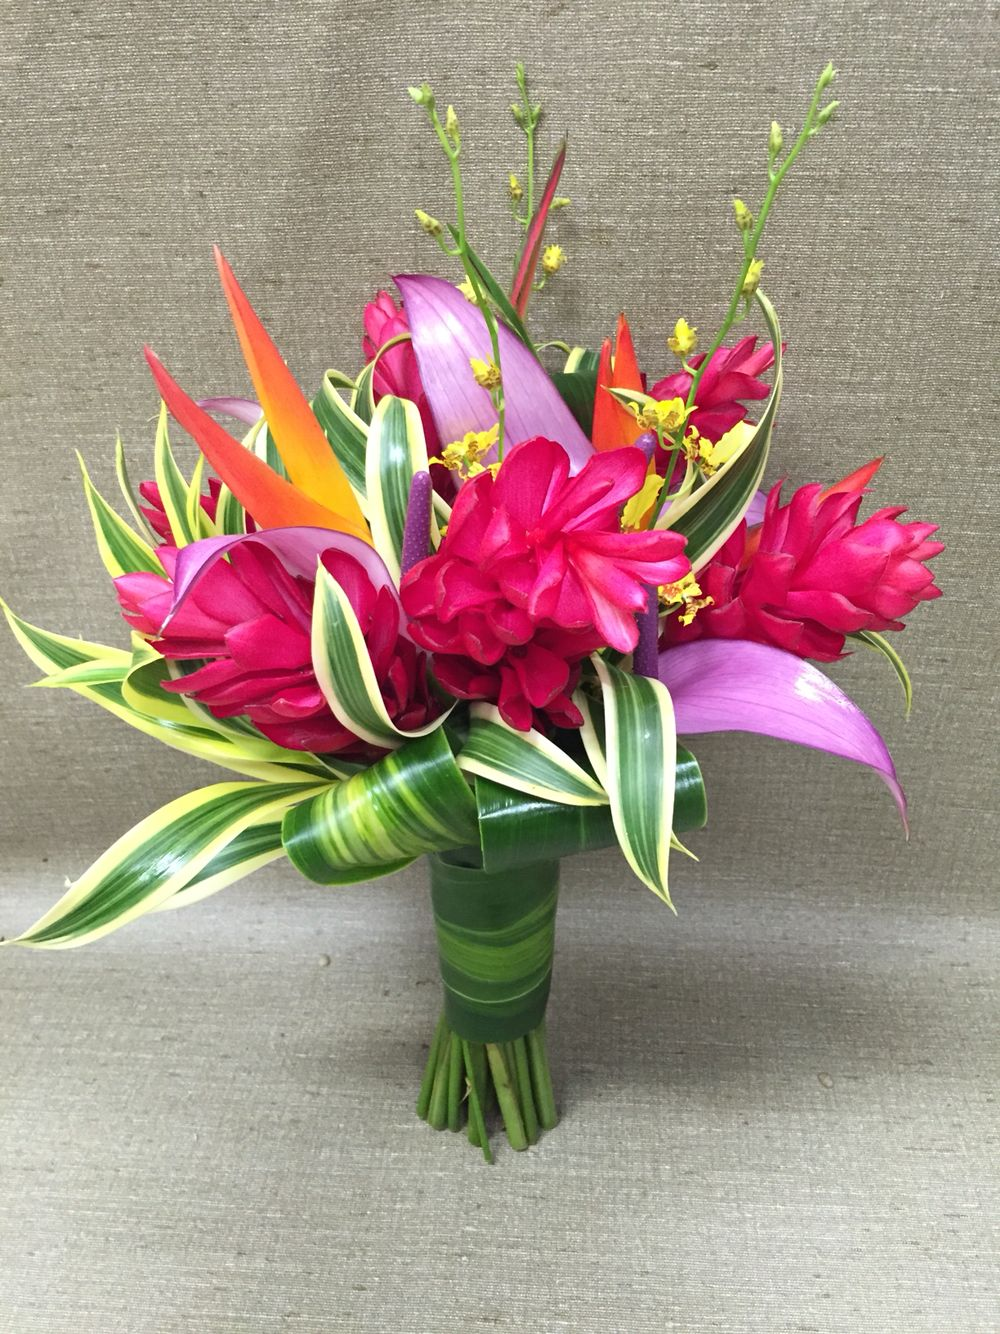 Ginger Orchid Anthurium Parrot Heleconia Hawaii Tropical Wedding Bouquet Tropical Flower Arrangements Tropical Wedding Flowers Tropical Floral Arrangements